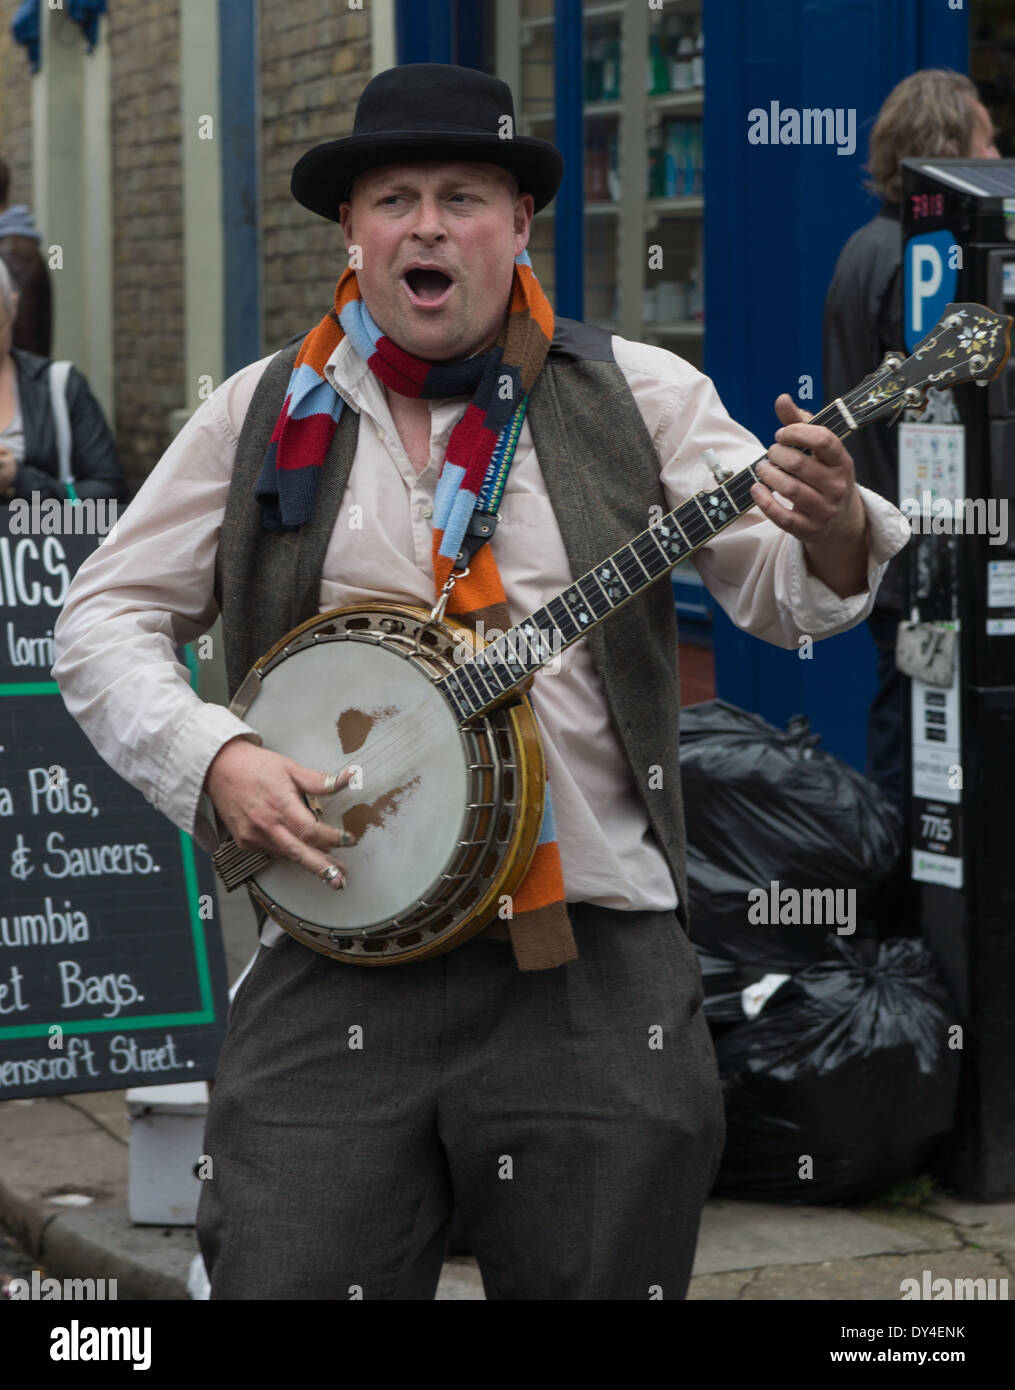 street musician playing banjo. London busker. - Stock Image